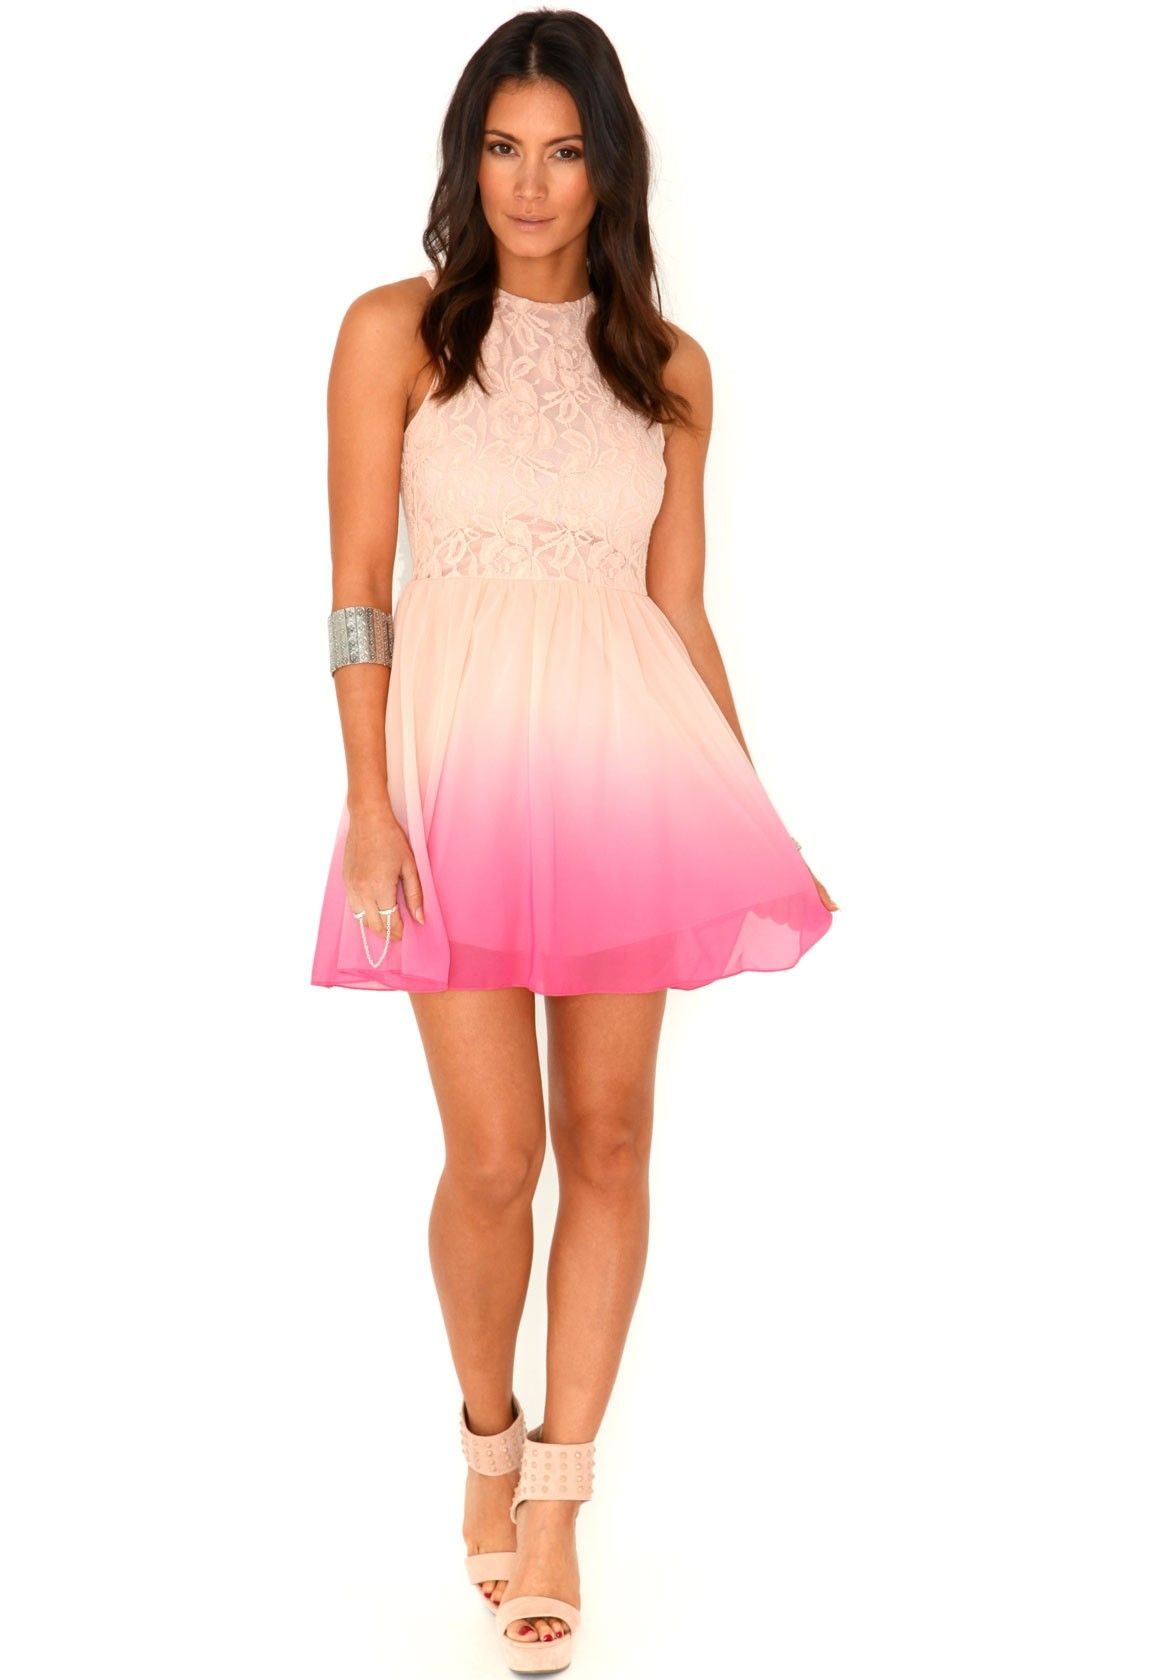 Damitta floral lace ombre skater dress in pink women